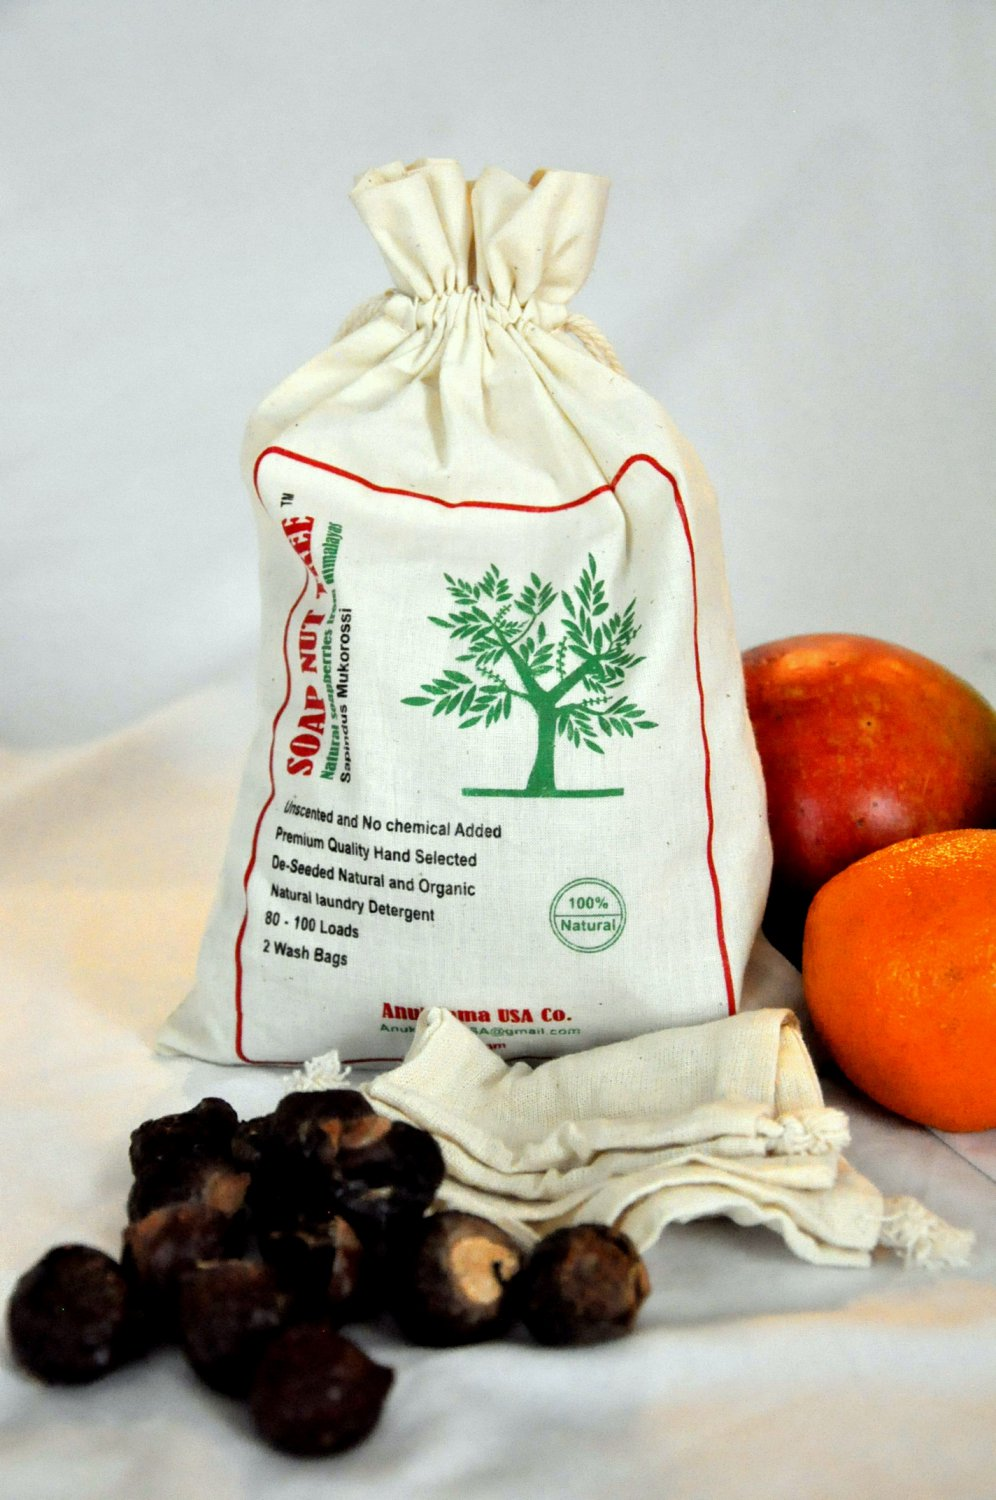 Soap Nut Organic Natural laundry detergent .55lb chemical free good for babies clothes and diapers